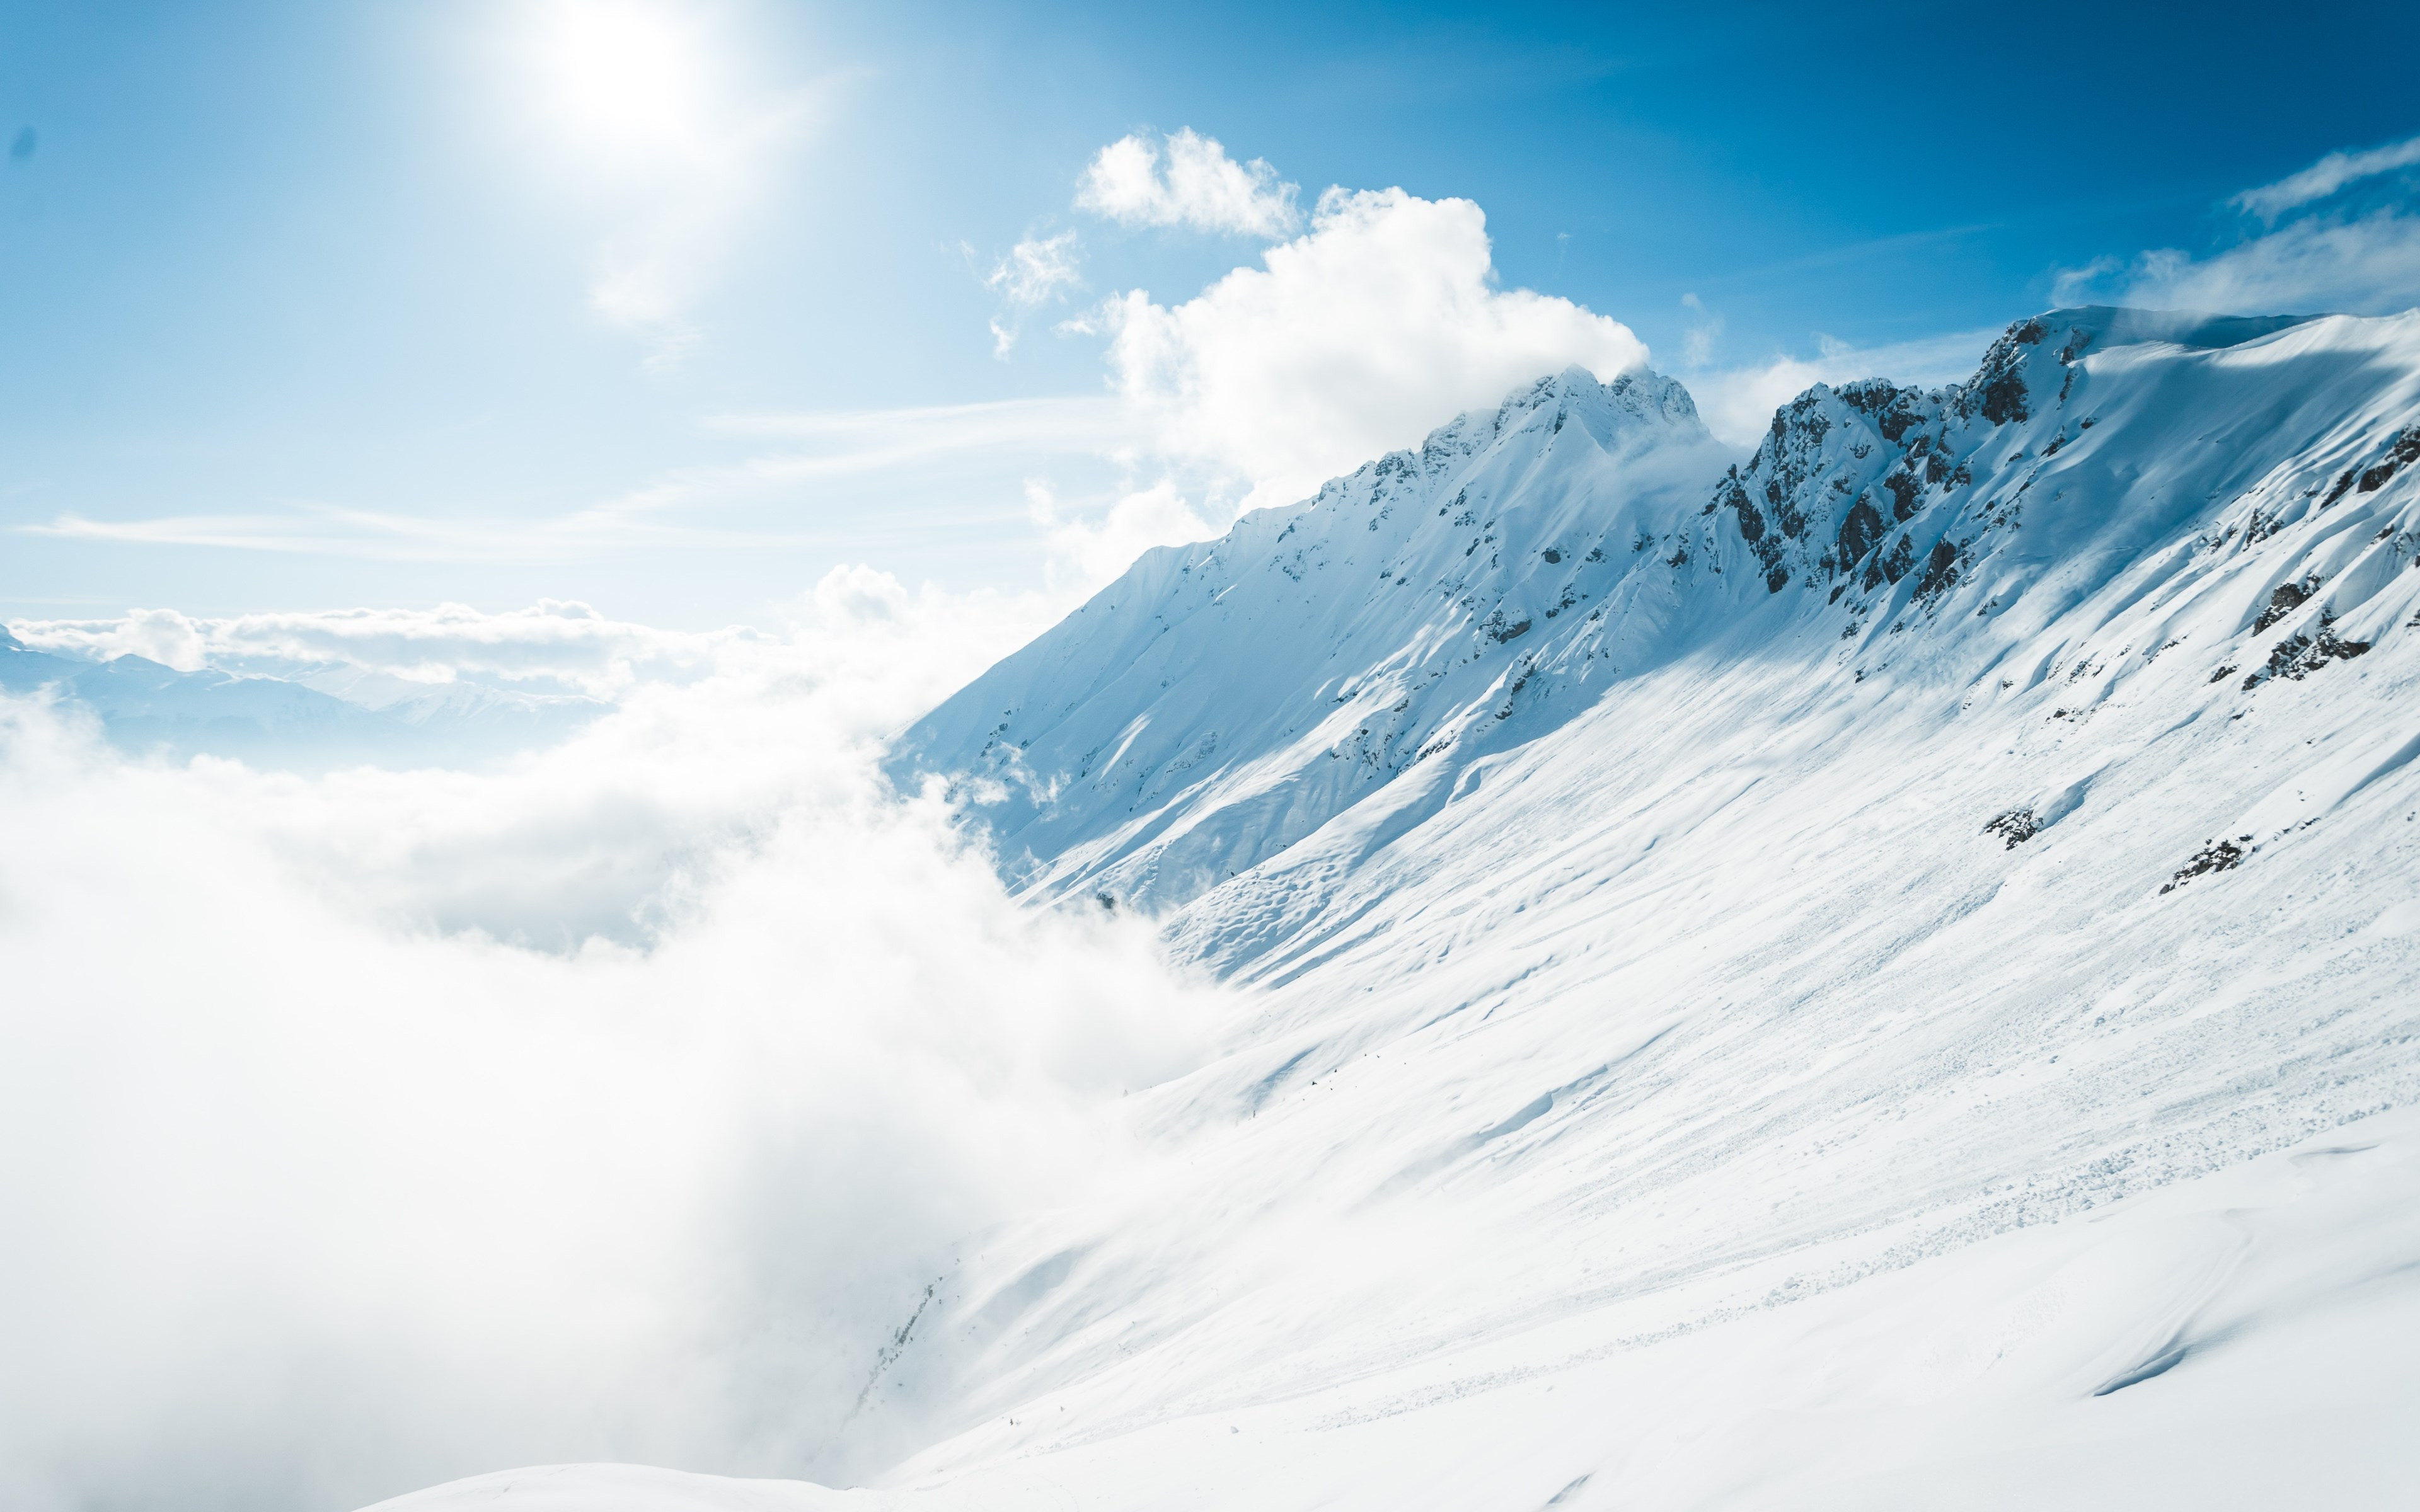 Mountains full of snow and blue sky wallpaper 3840x2400